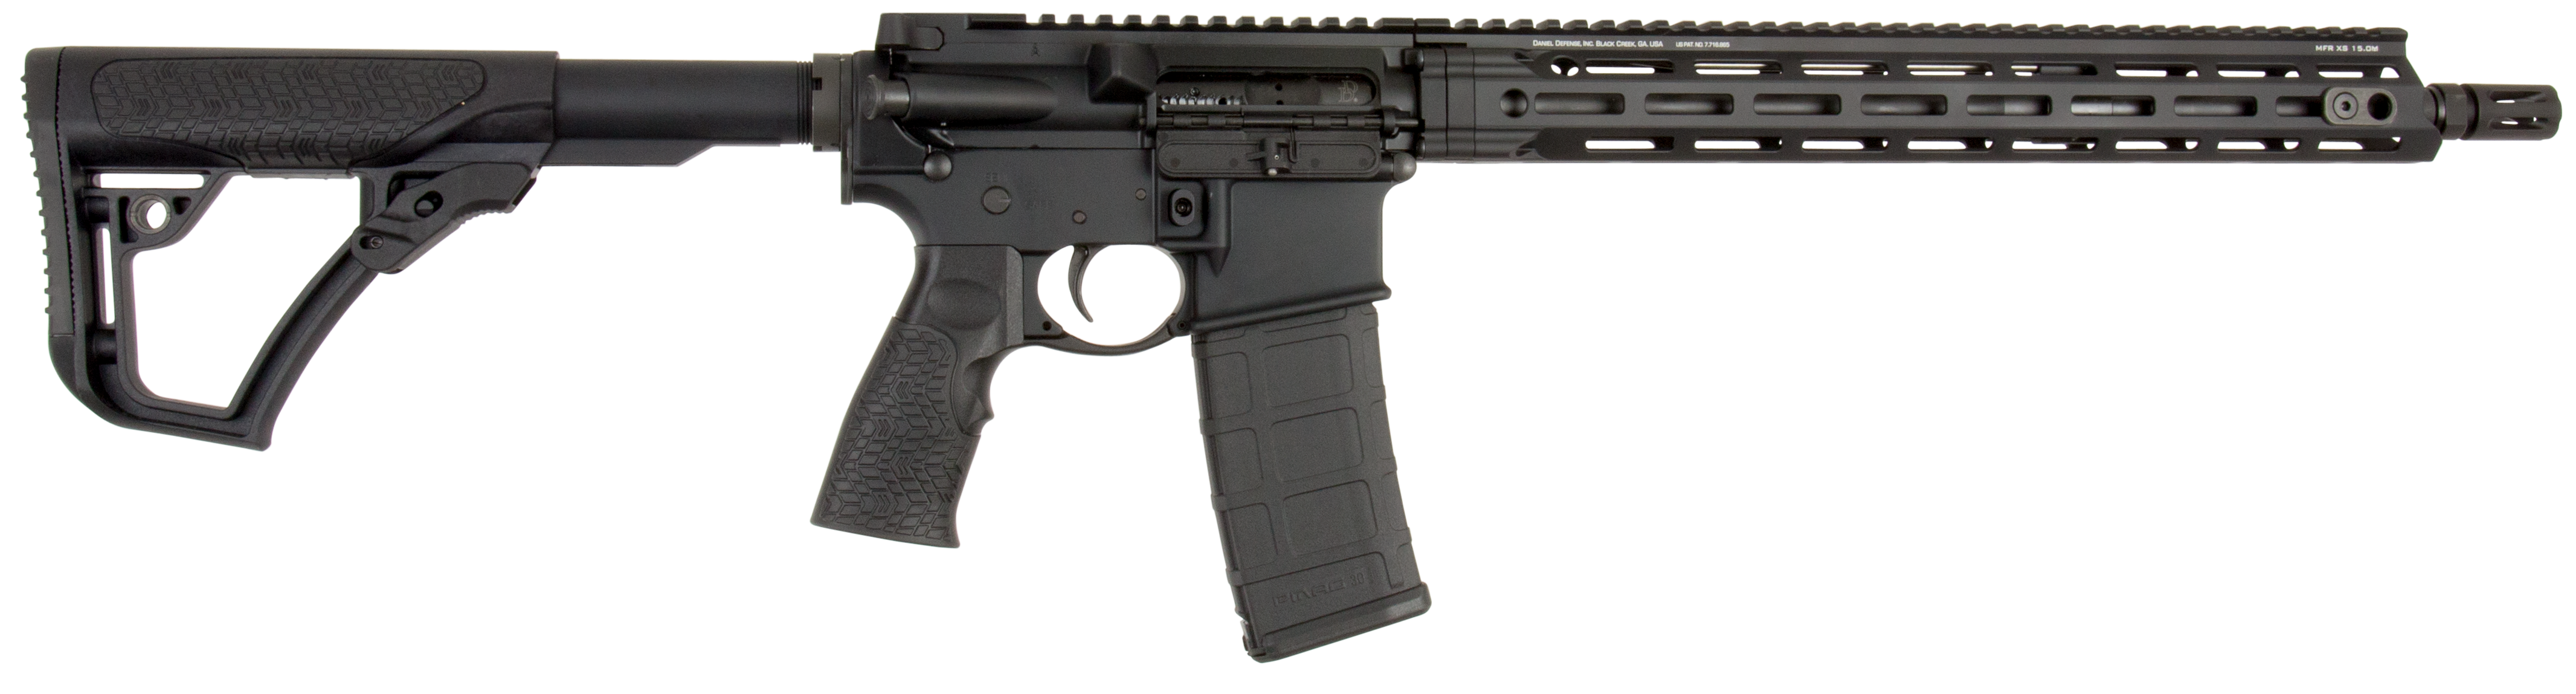 Daniel Defense 02081055 DDM4 V7 *CA Compliant* Semi-Automatic 223 Remington/5.56 NATO 16